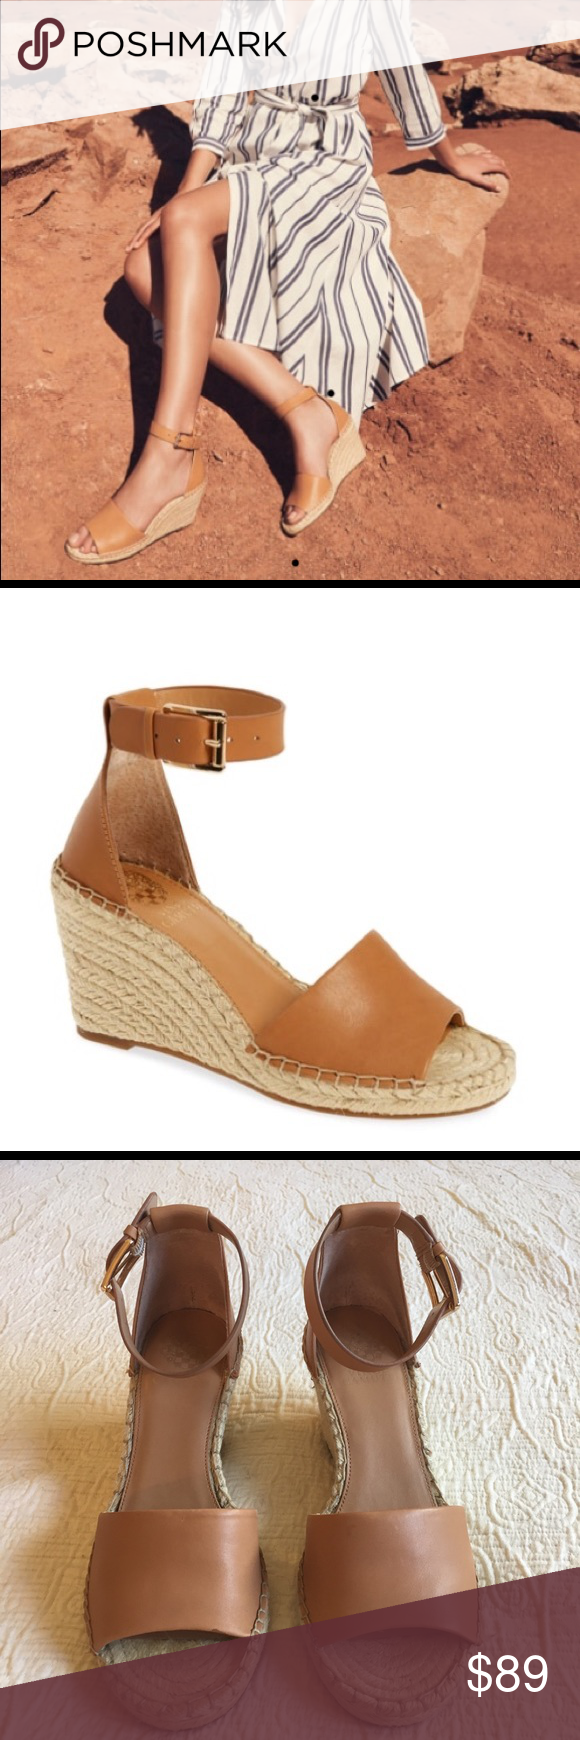 9fd4dfc05a Vince Camuto Leera Wedge Espadrilles Tan Sandals This is a beautiful pair  of Leera wedge espadrille